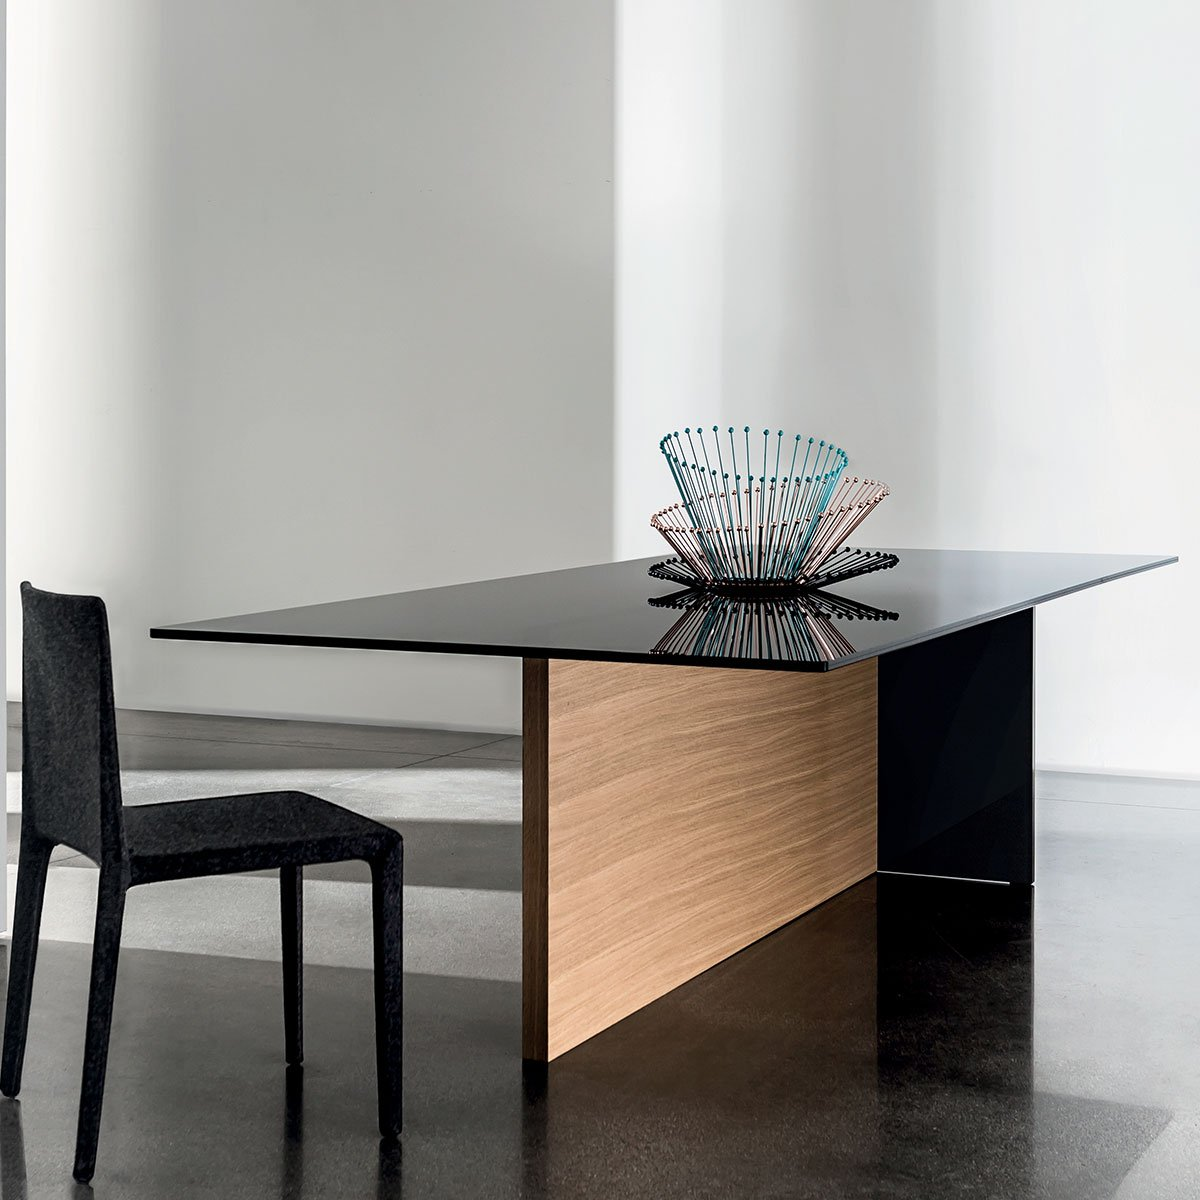 Regolo Glass and Wood Dining Table - Klarity - Glass Furniture